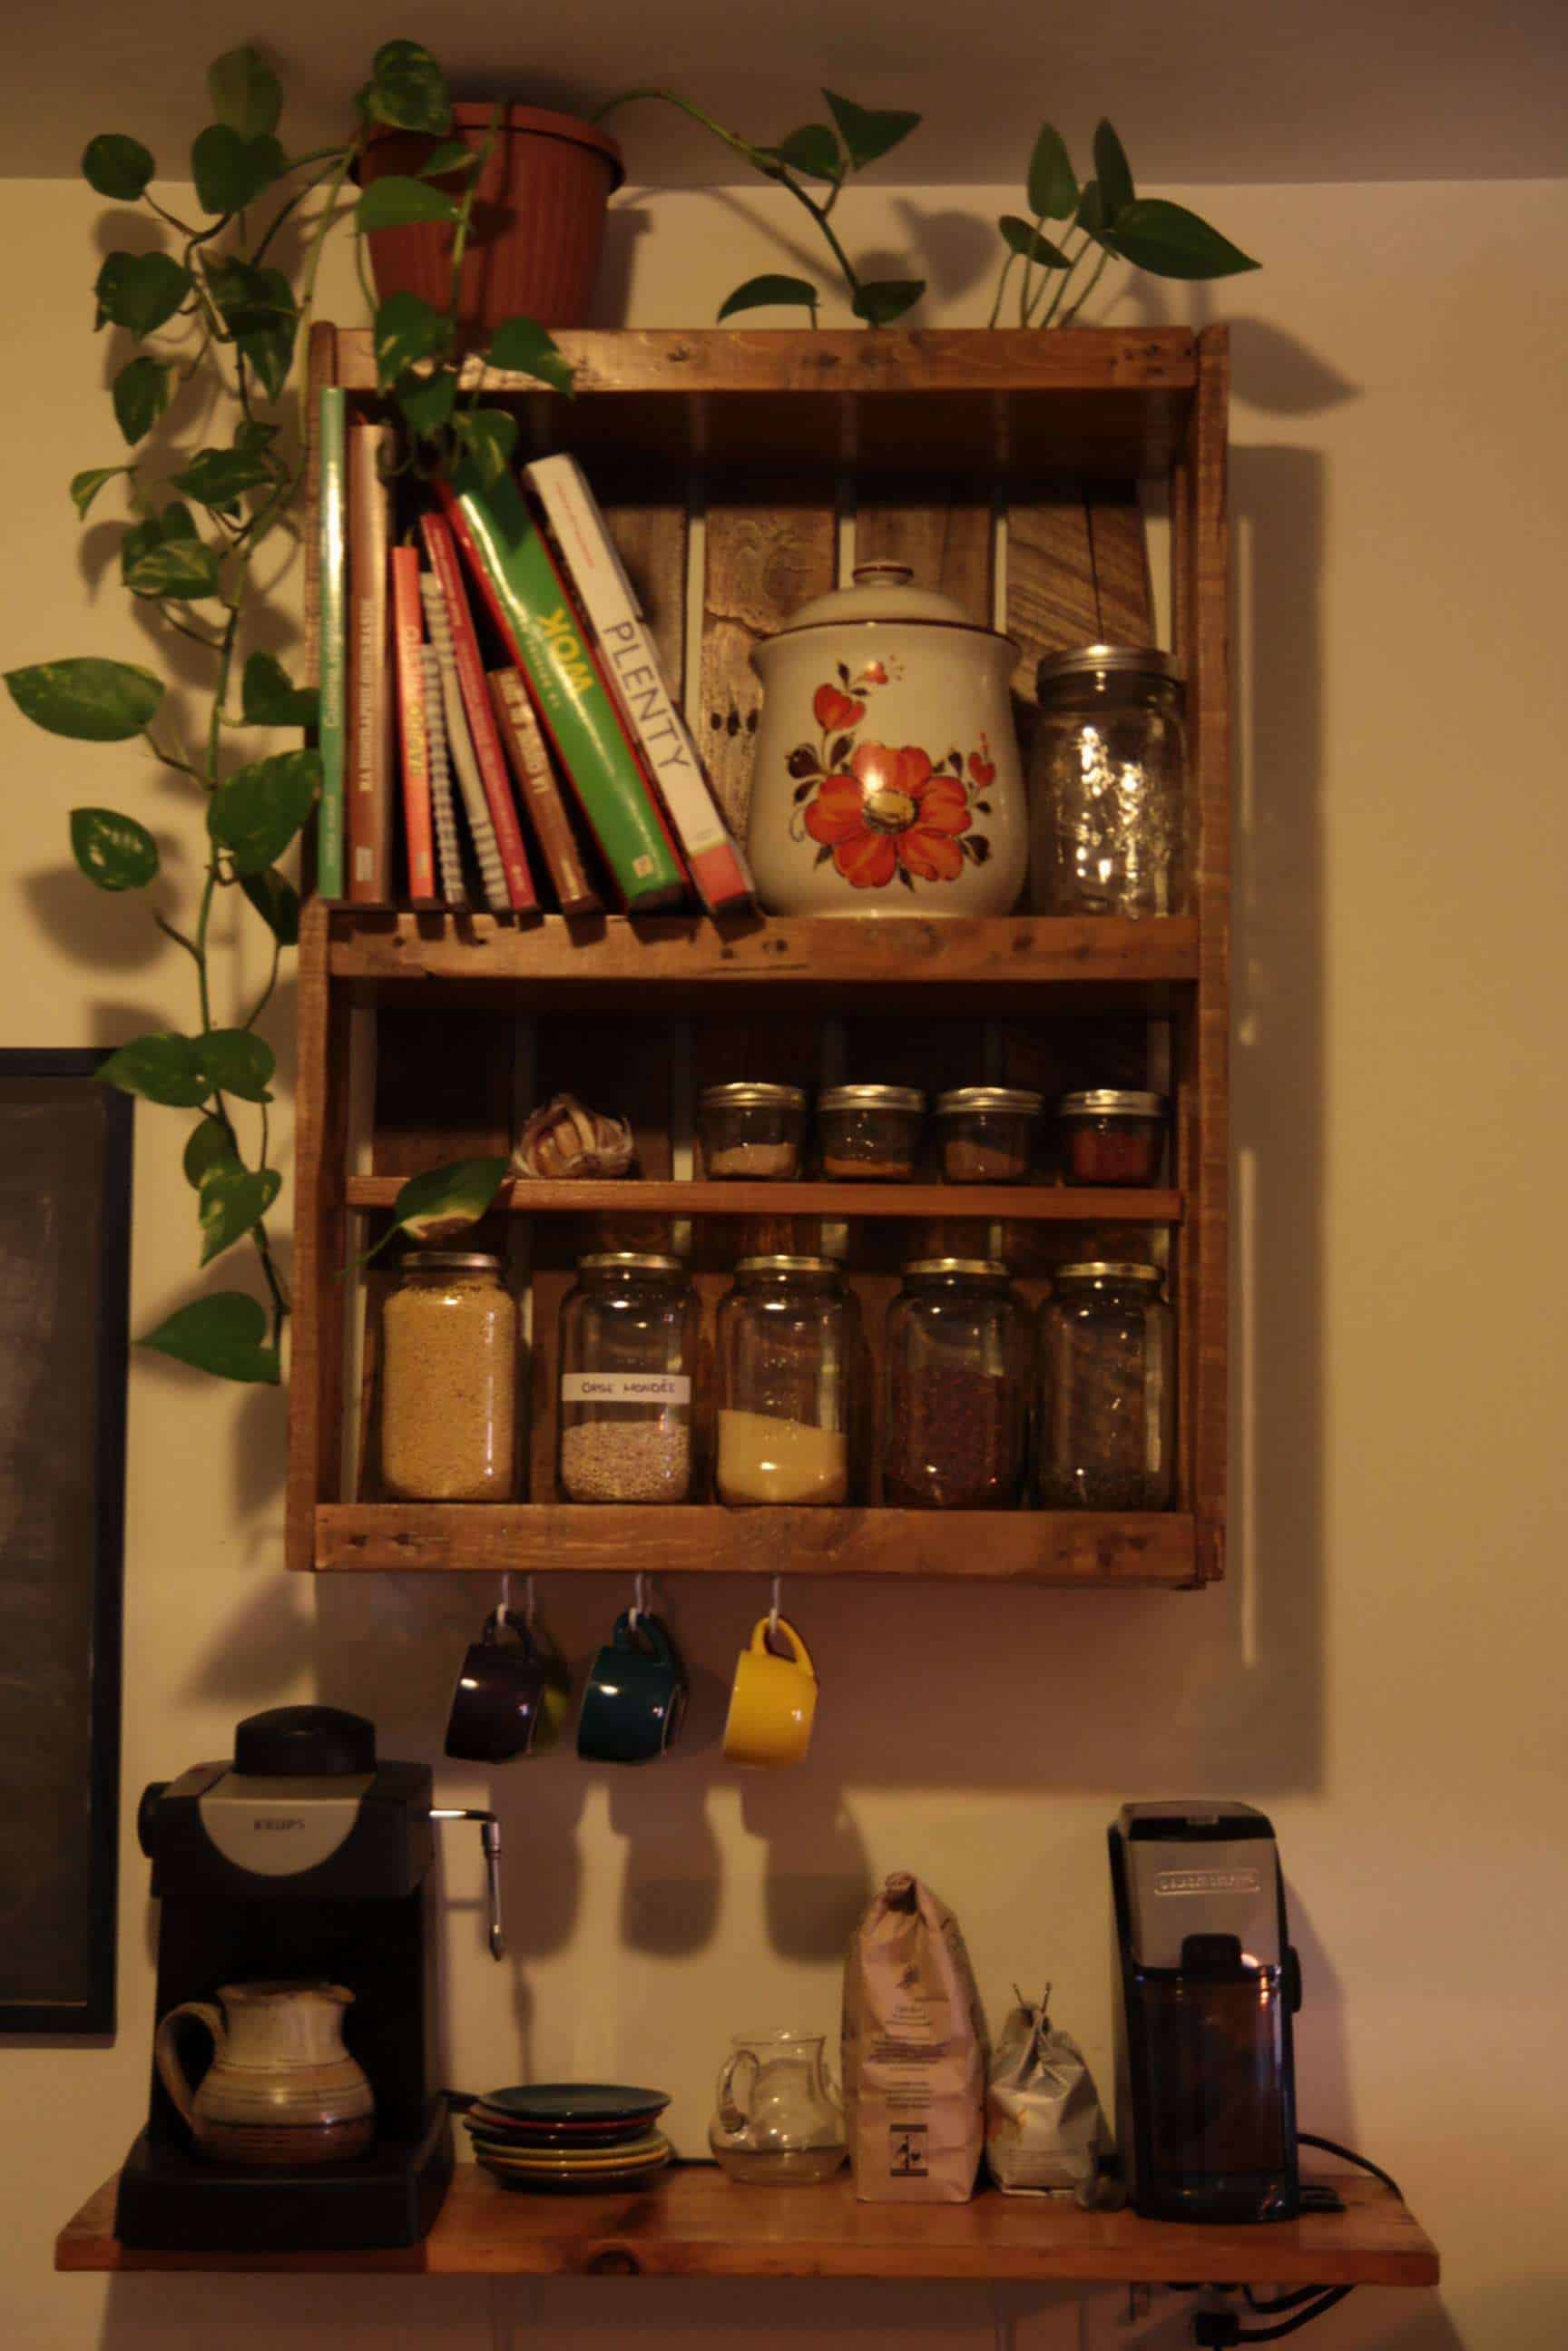 Tag re de cuisine en palette kitchen pallet shelf pallet ideas 1001 pa - Etagere deco cuisine ...